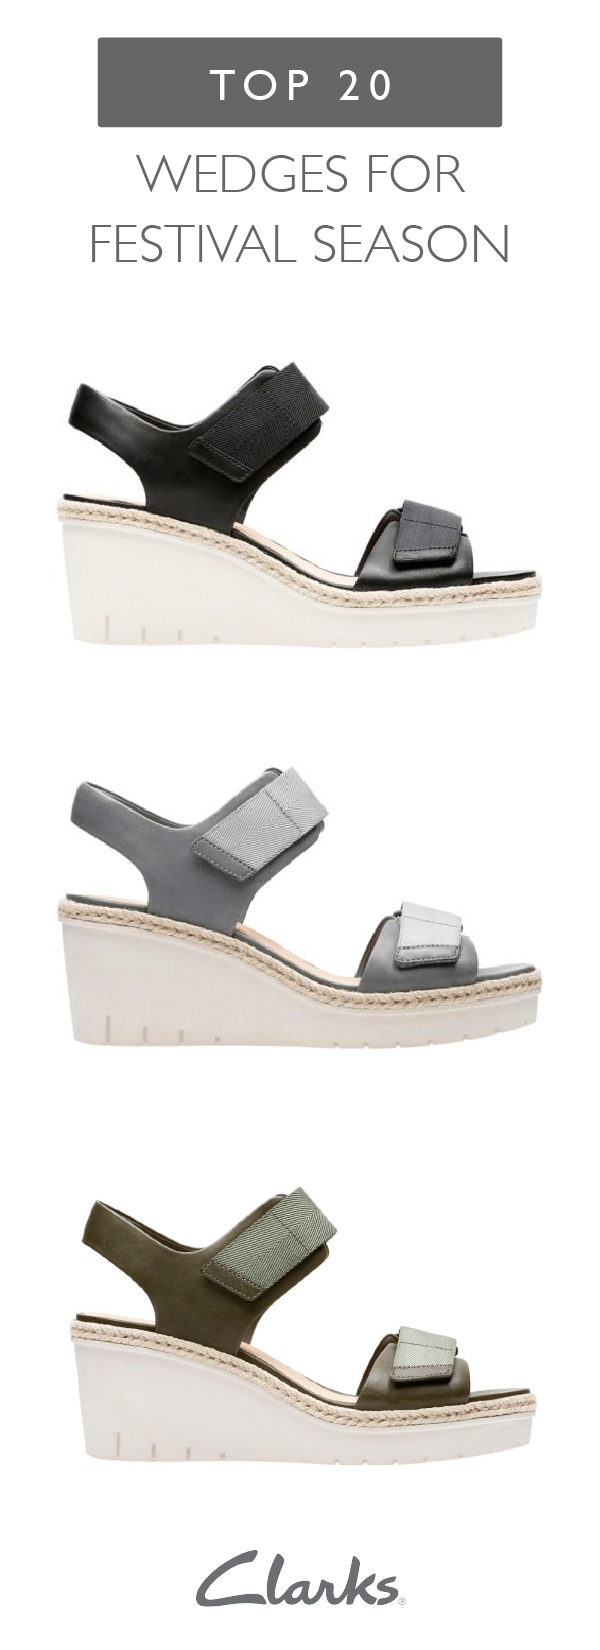 cd71e3d0594 Sporty style meets classic wedge sandals in these Palm Shine shoes ...